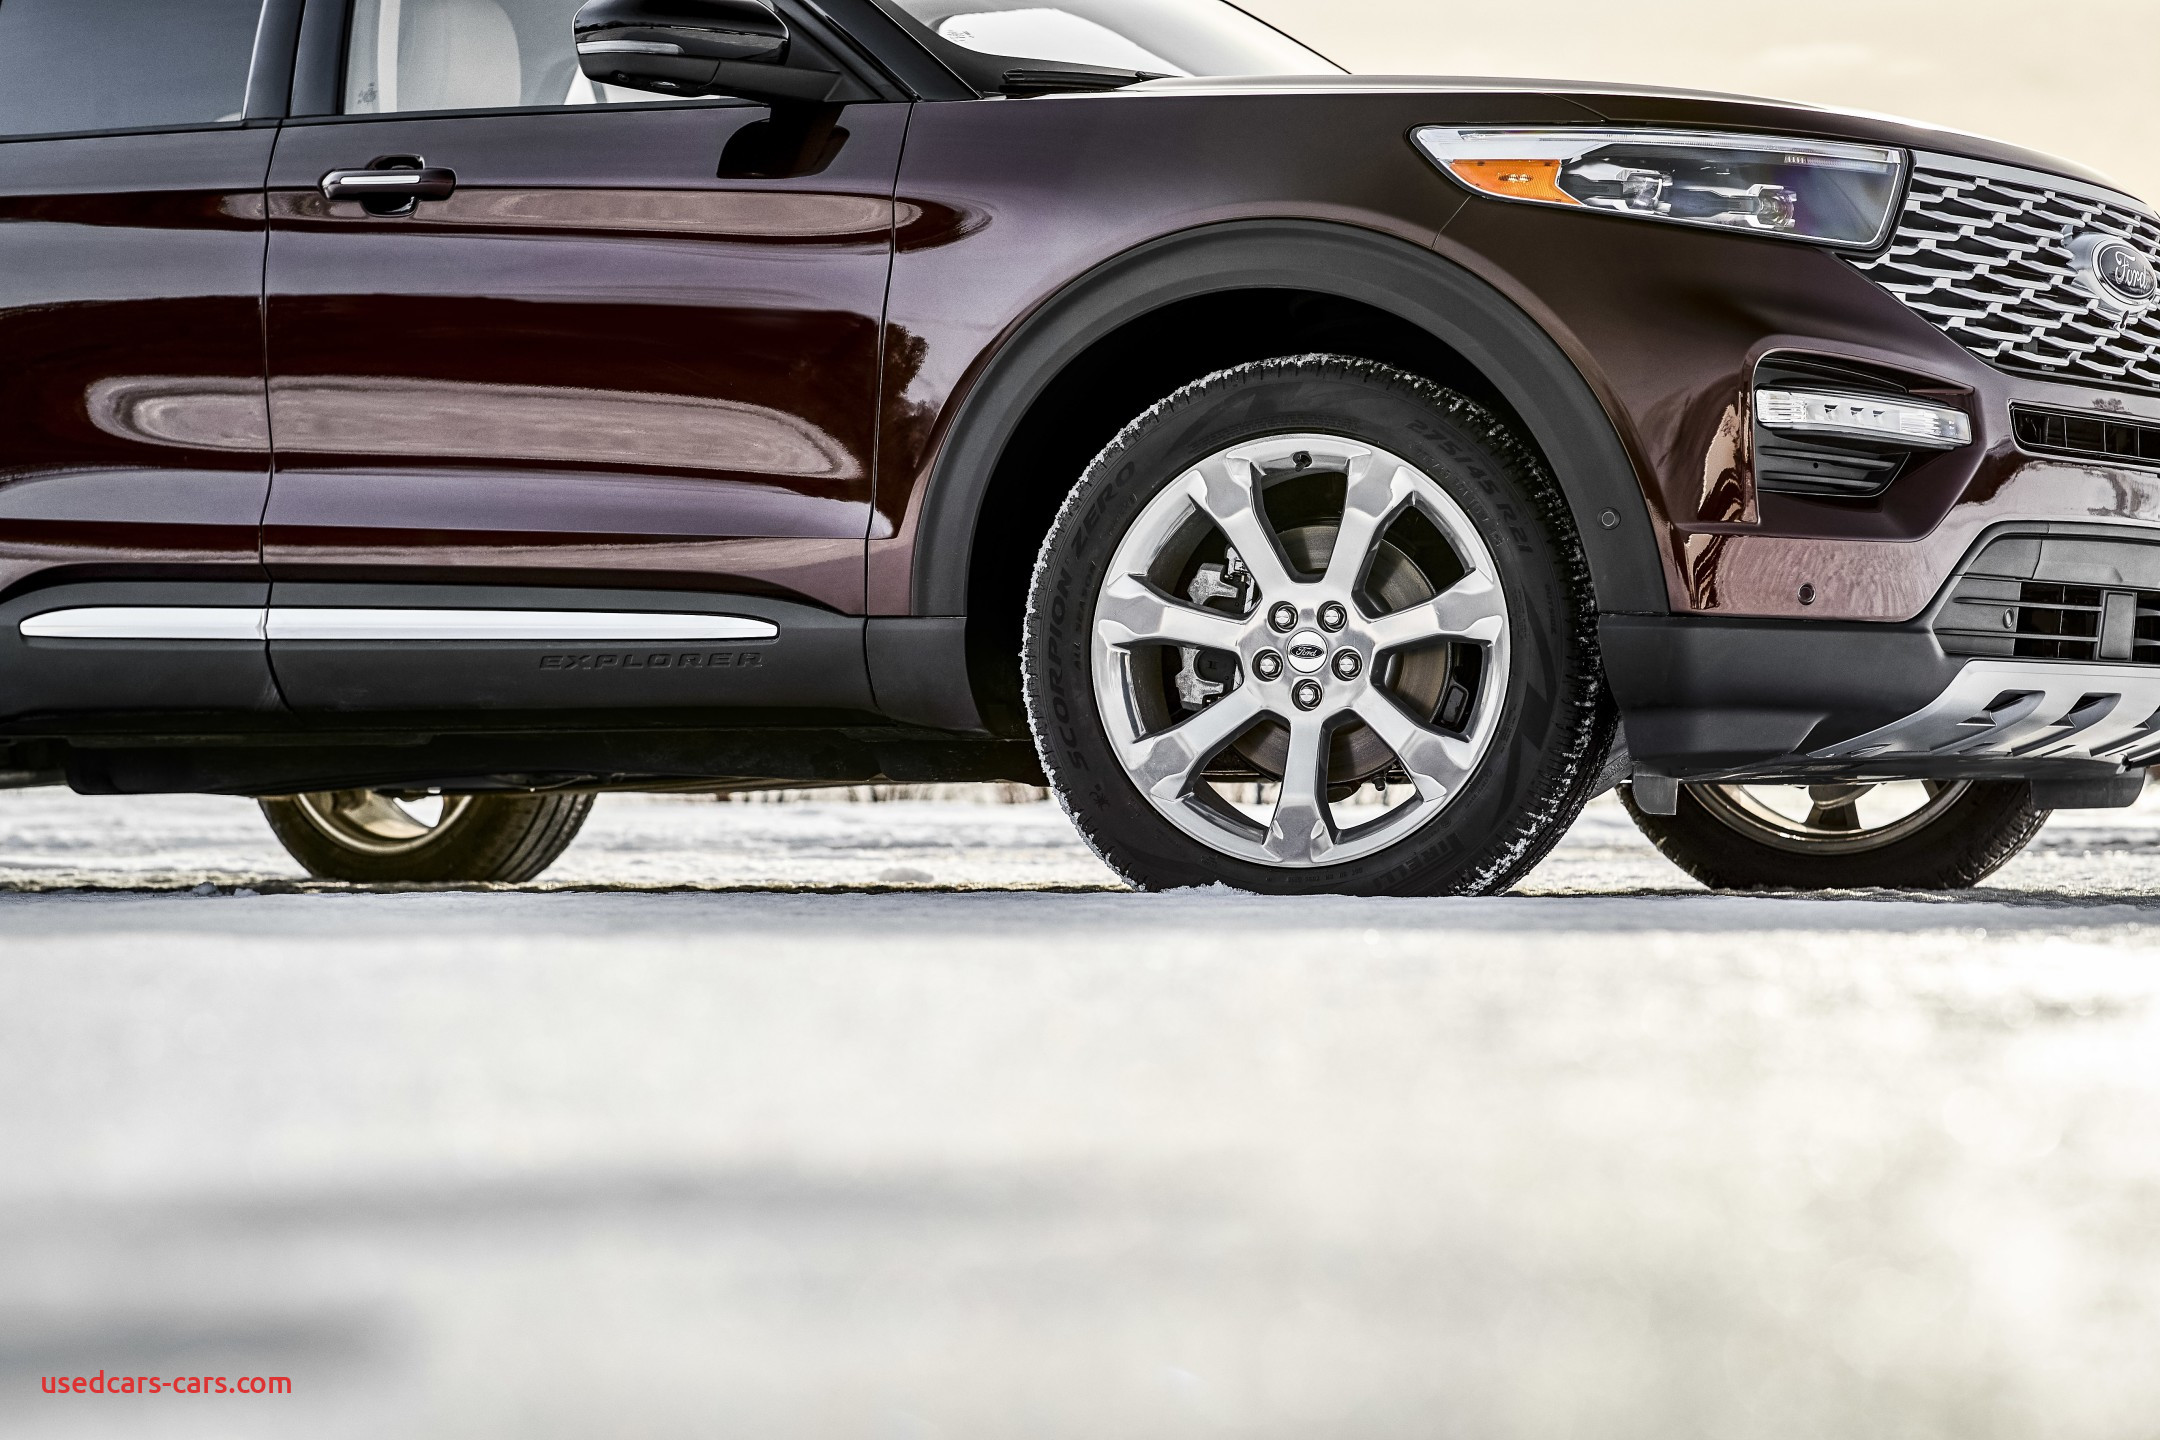 Ford Explorer 2020 Quality Awesome Gallery Inside the All New 2020 ford Explorer